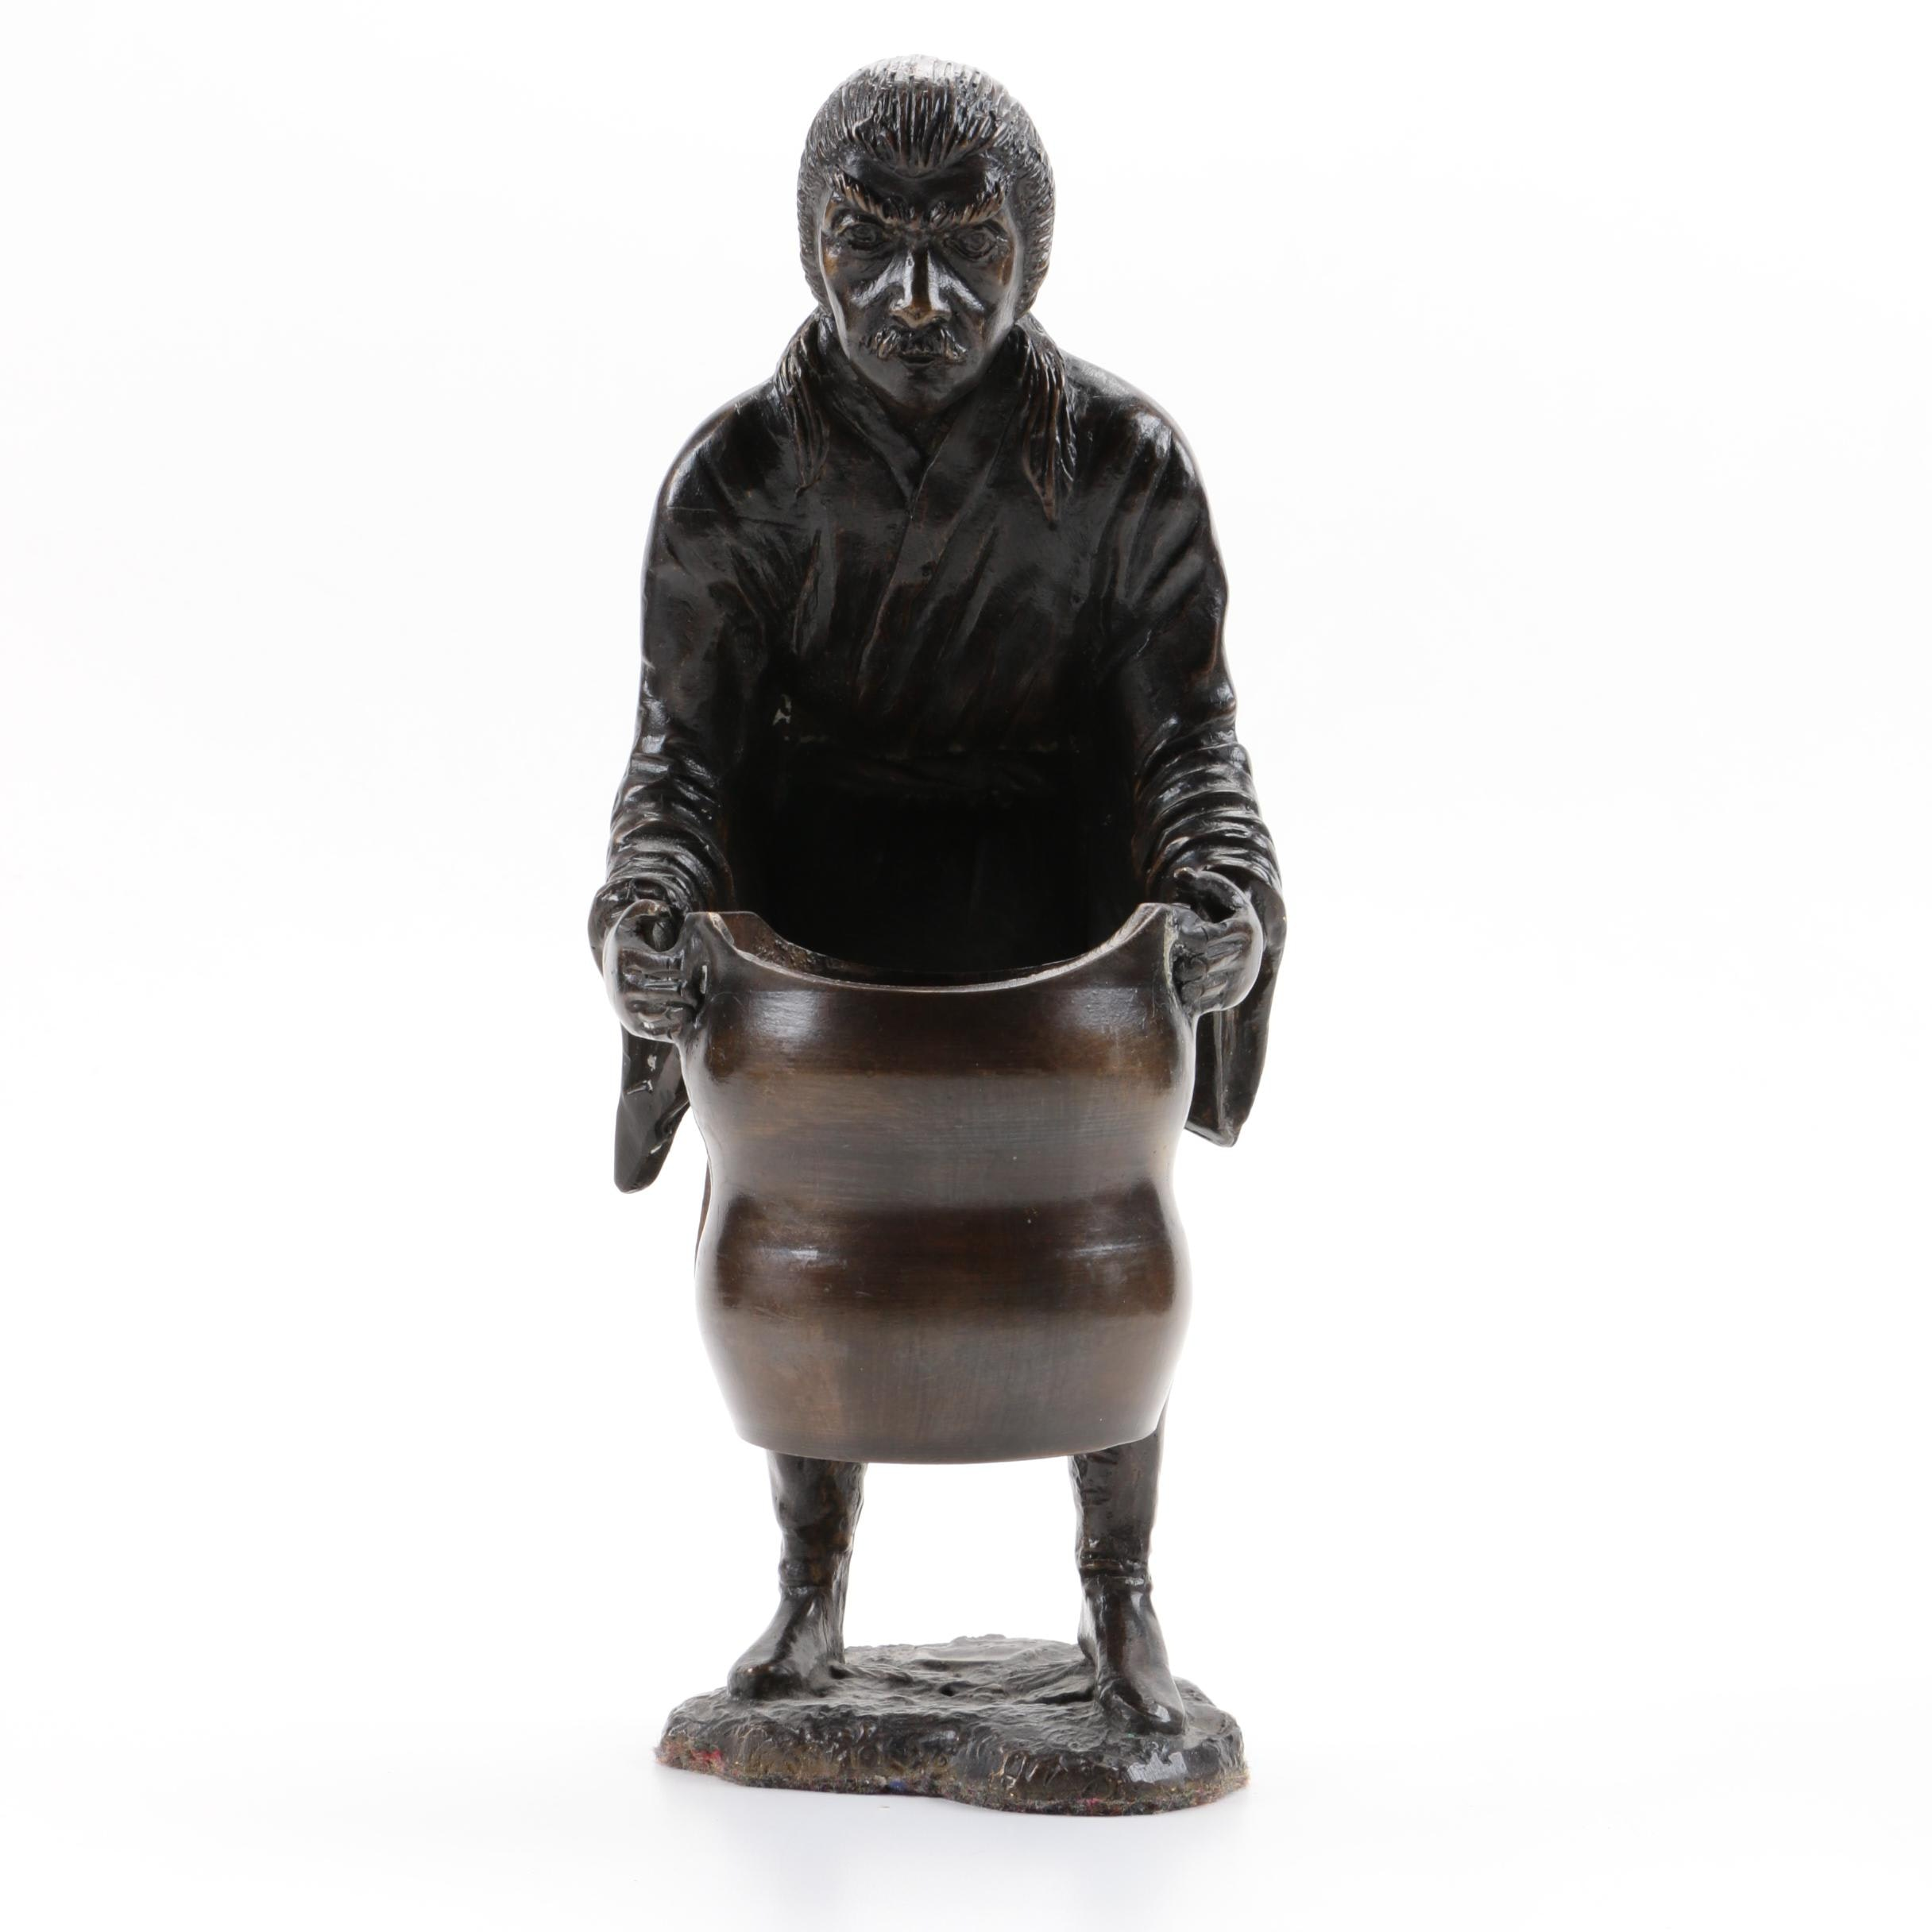 East Asian Inspired Cast Brass Figure with Handled Vessel